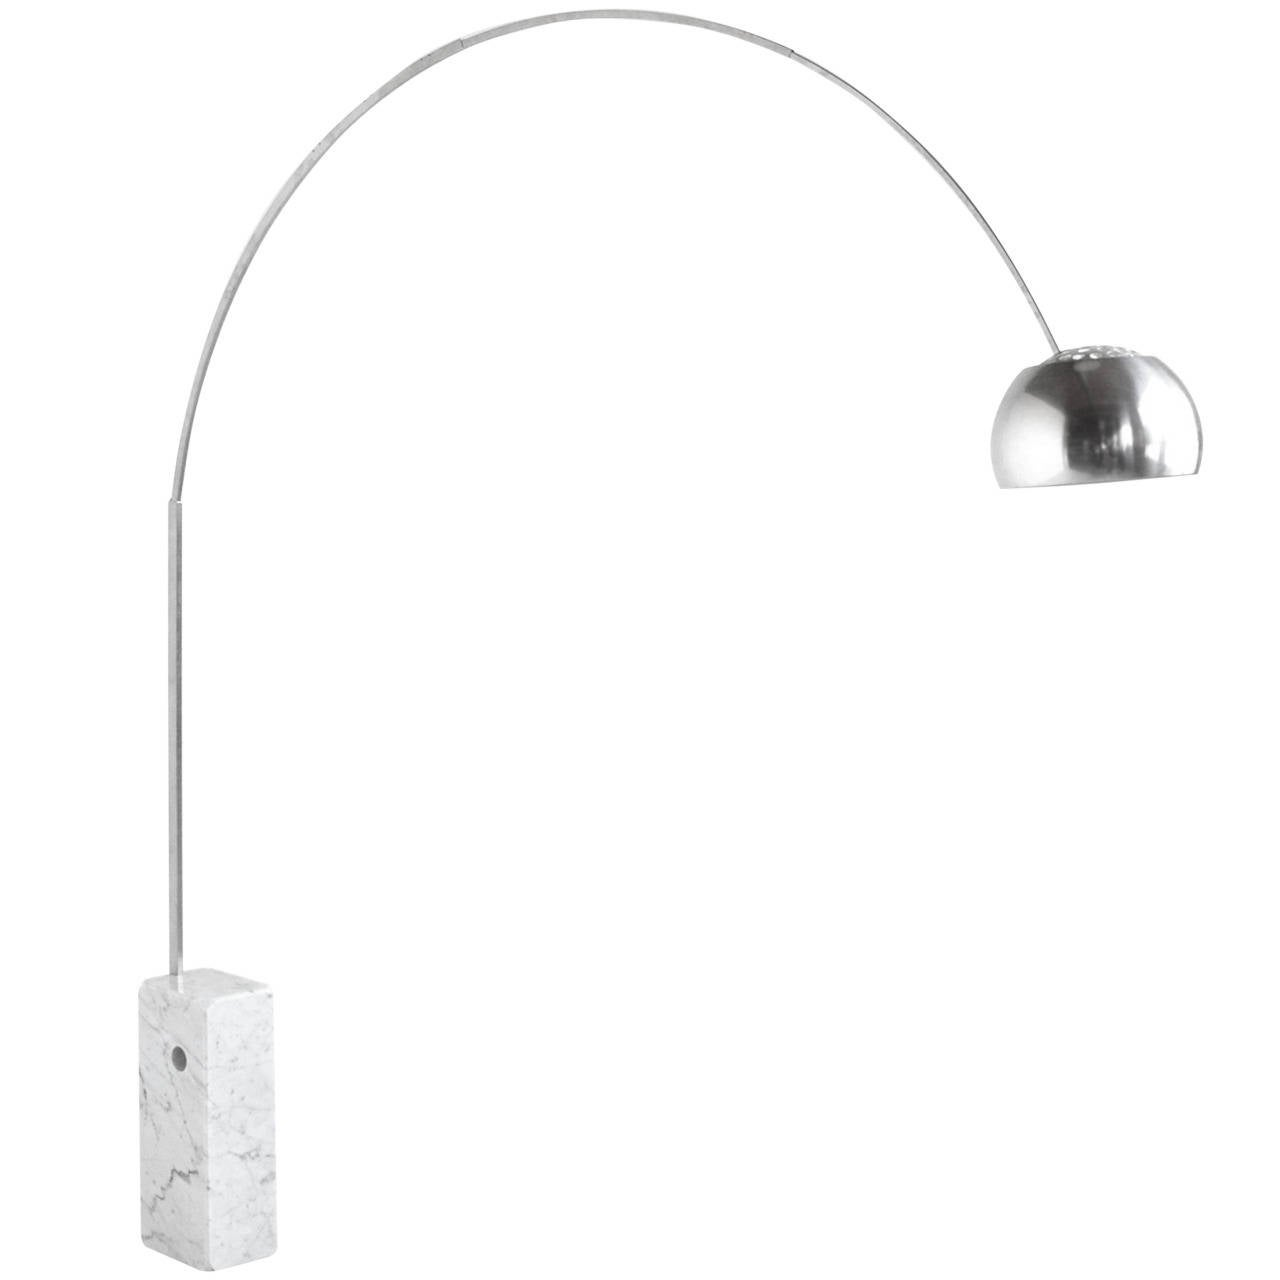 achille castiglioni arco lamp by flos for sale at 1stdibs